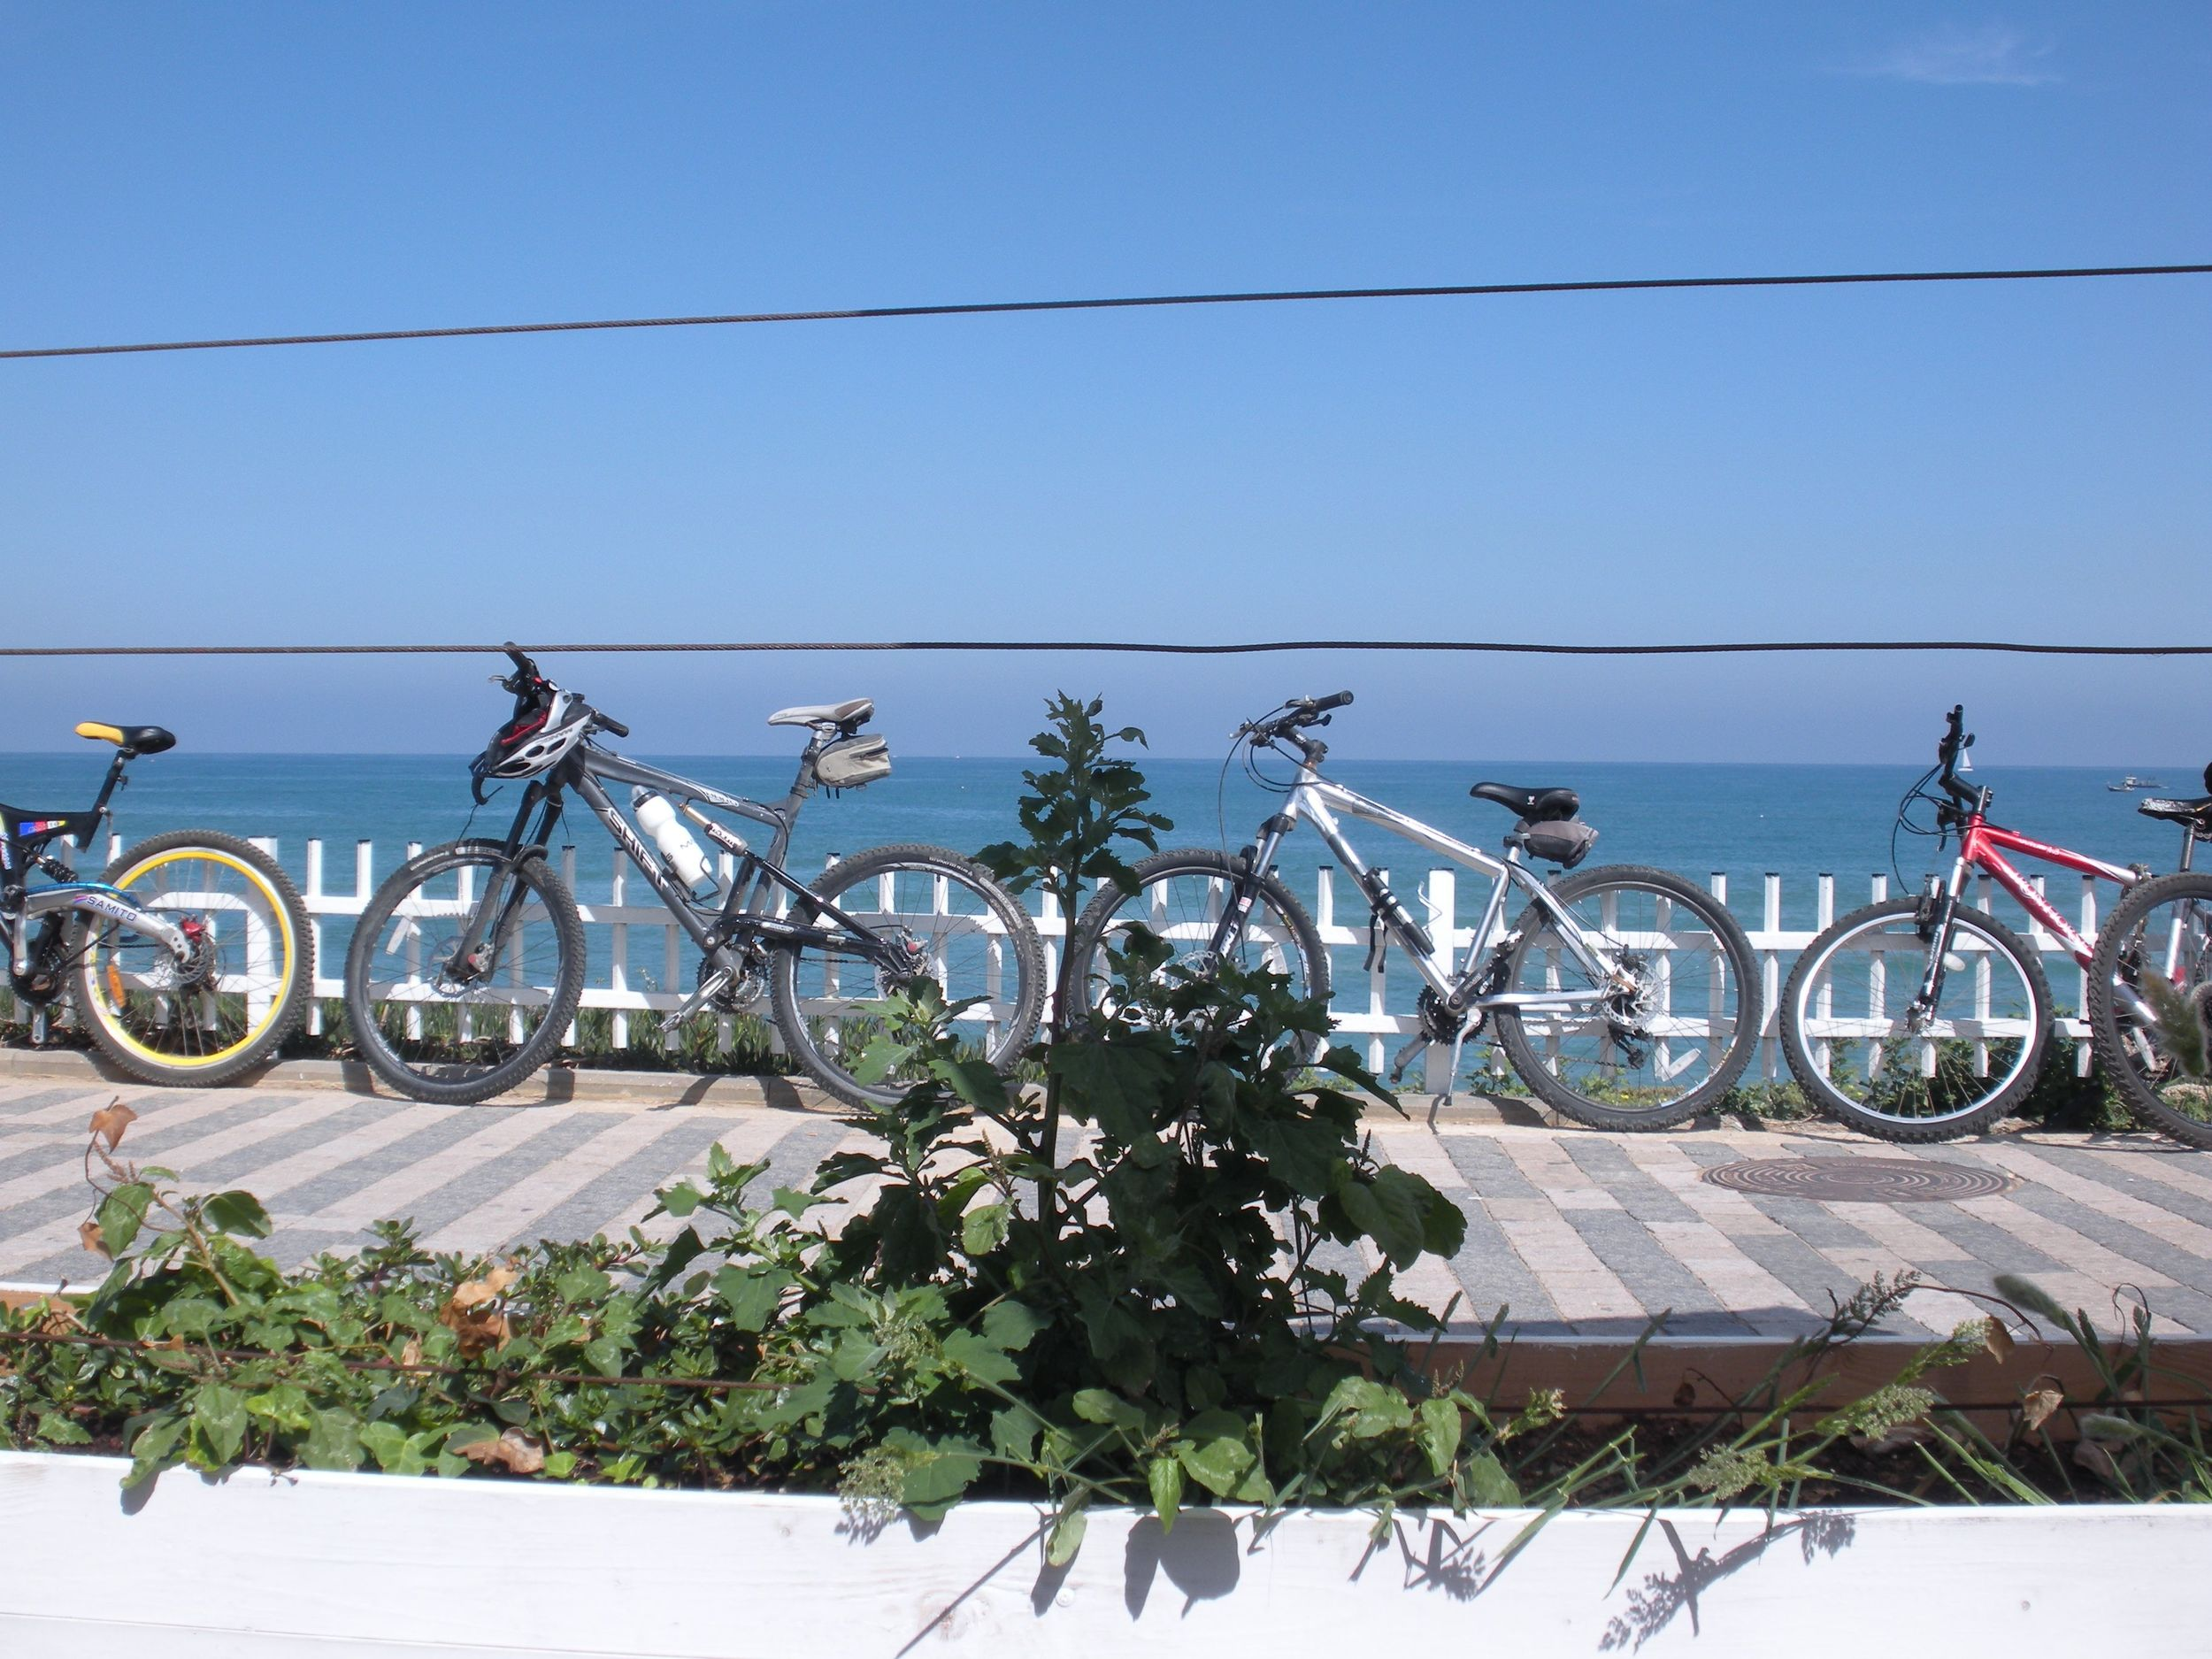 Copy of bikes on the promenade tel aviv.jpg